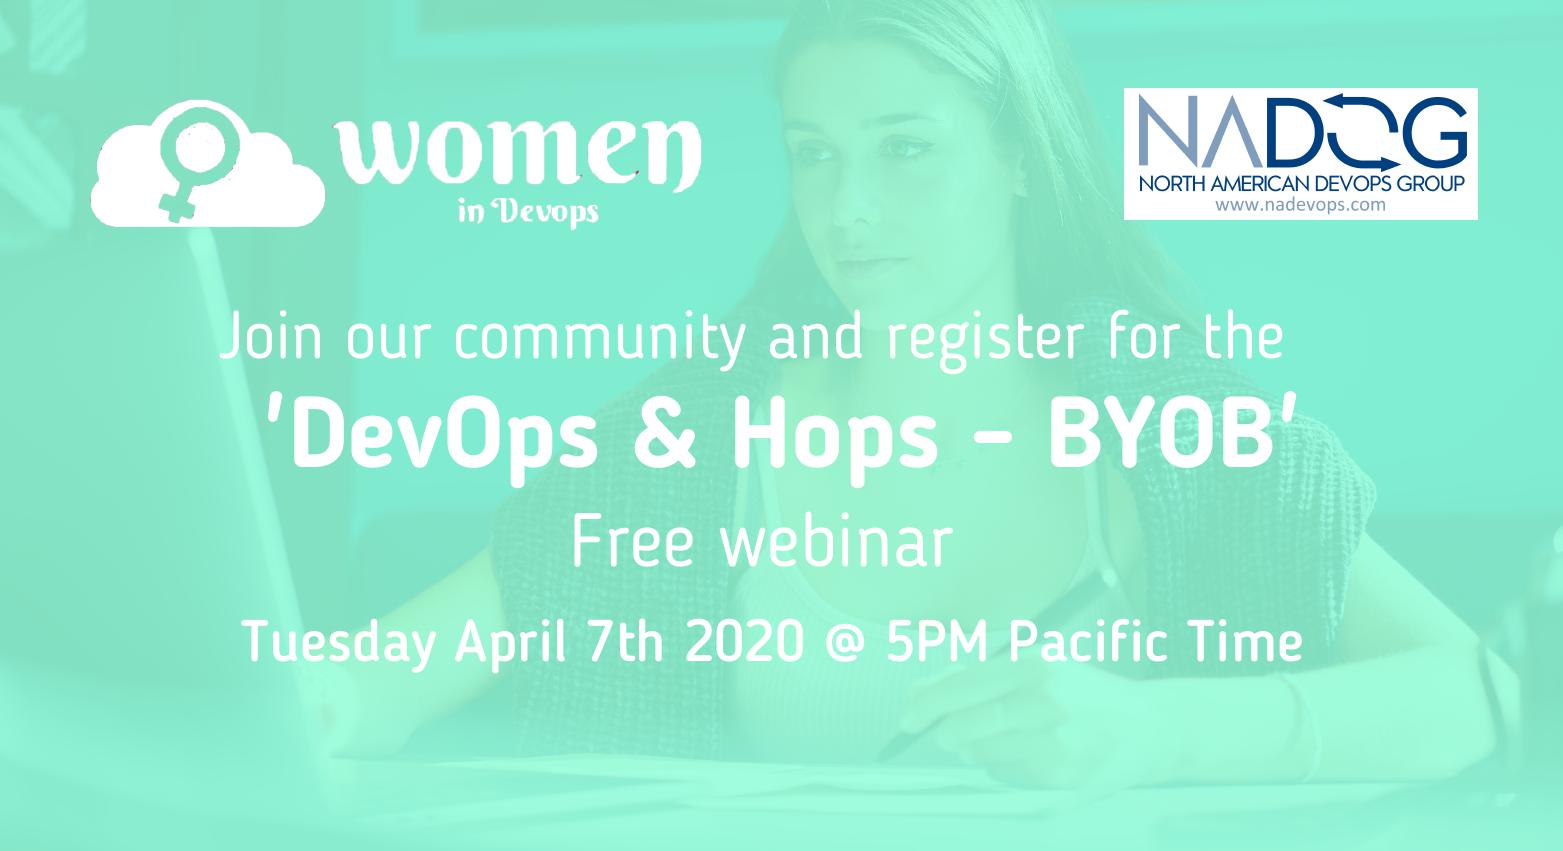 Webinar collaboration - 'DevOps & Hops - BYOB'